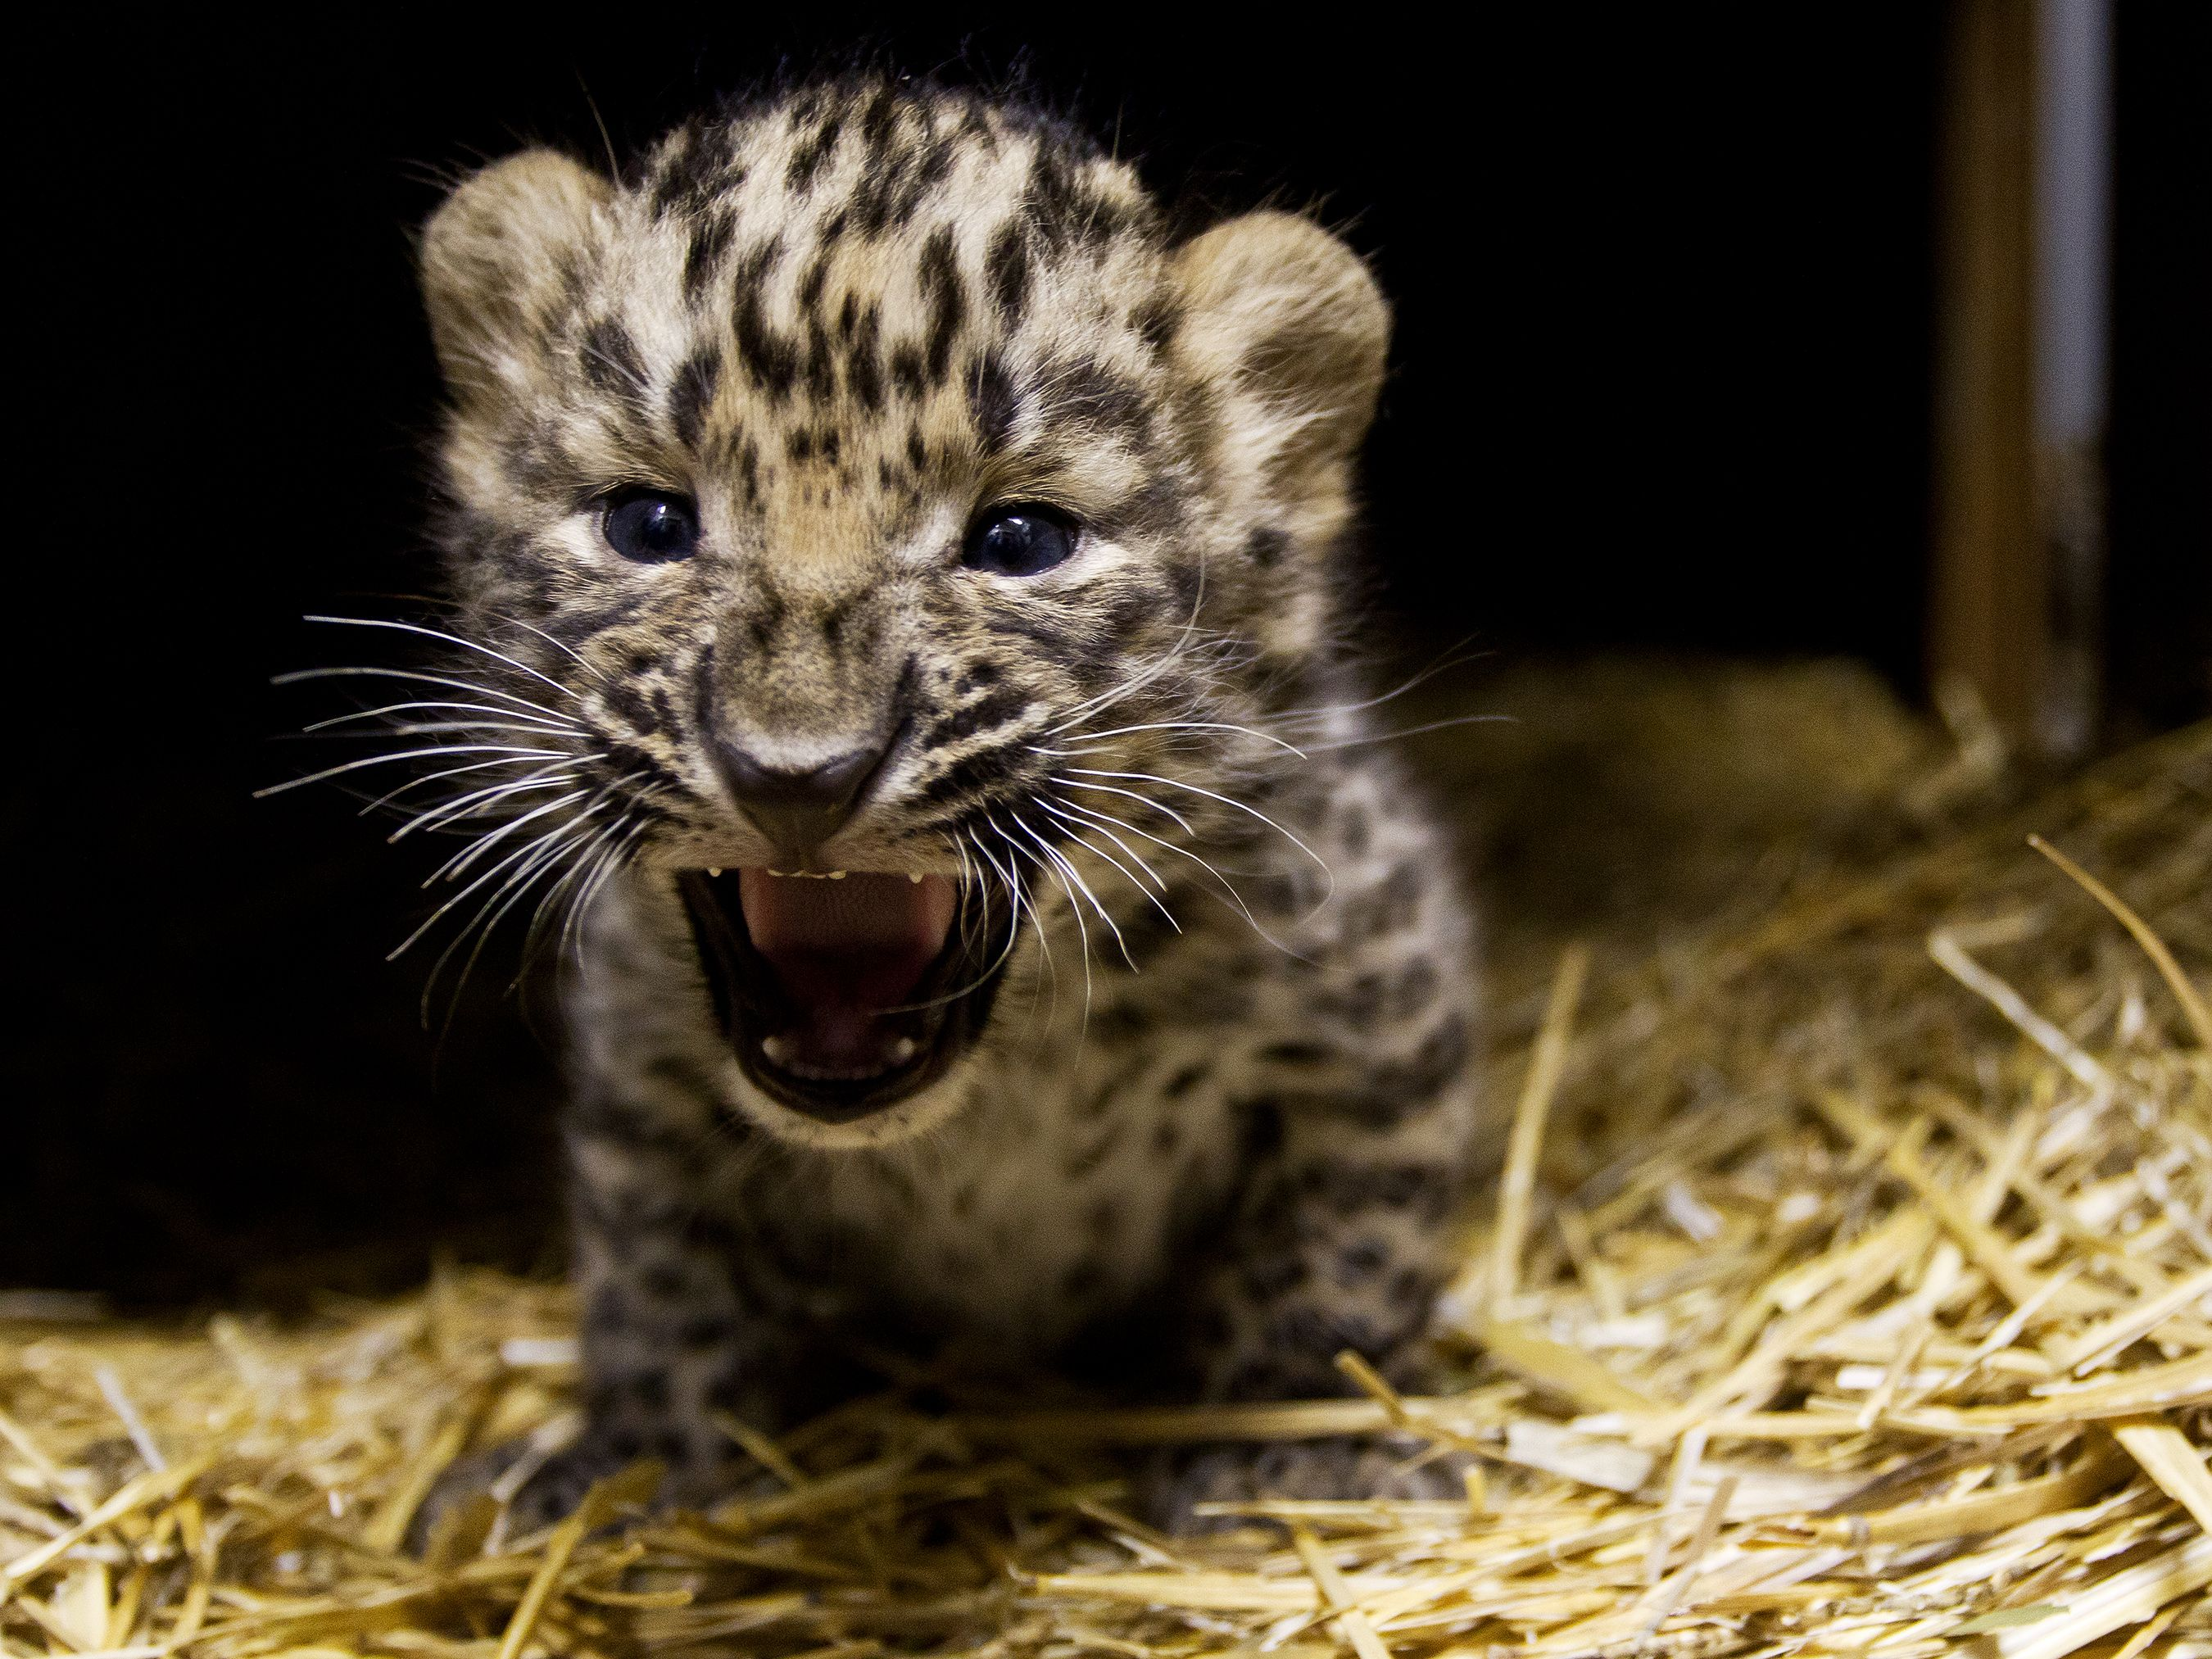 Prague Zoo Is Celebrating The Birth Of Amur Leopards, A